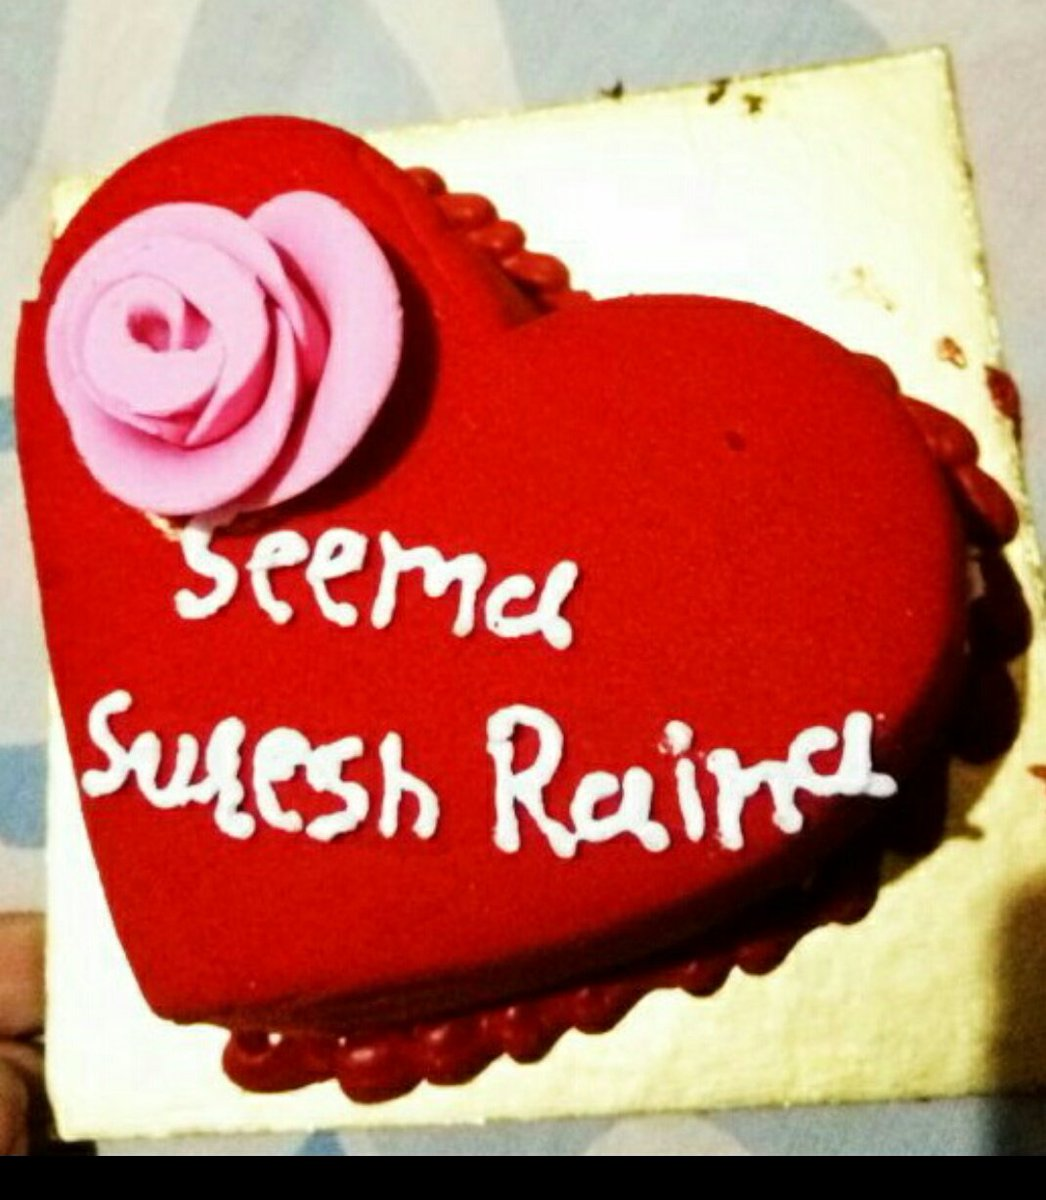 Seema Raina On Twitter Birthday Cakes Are Not Sweeter Then You